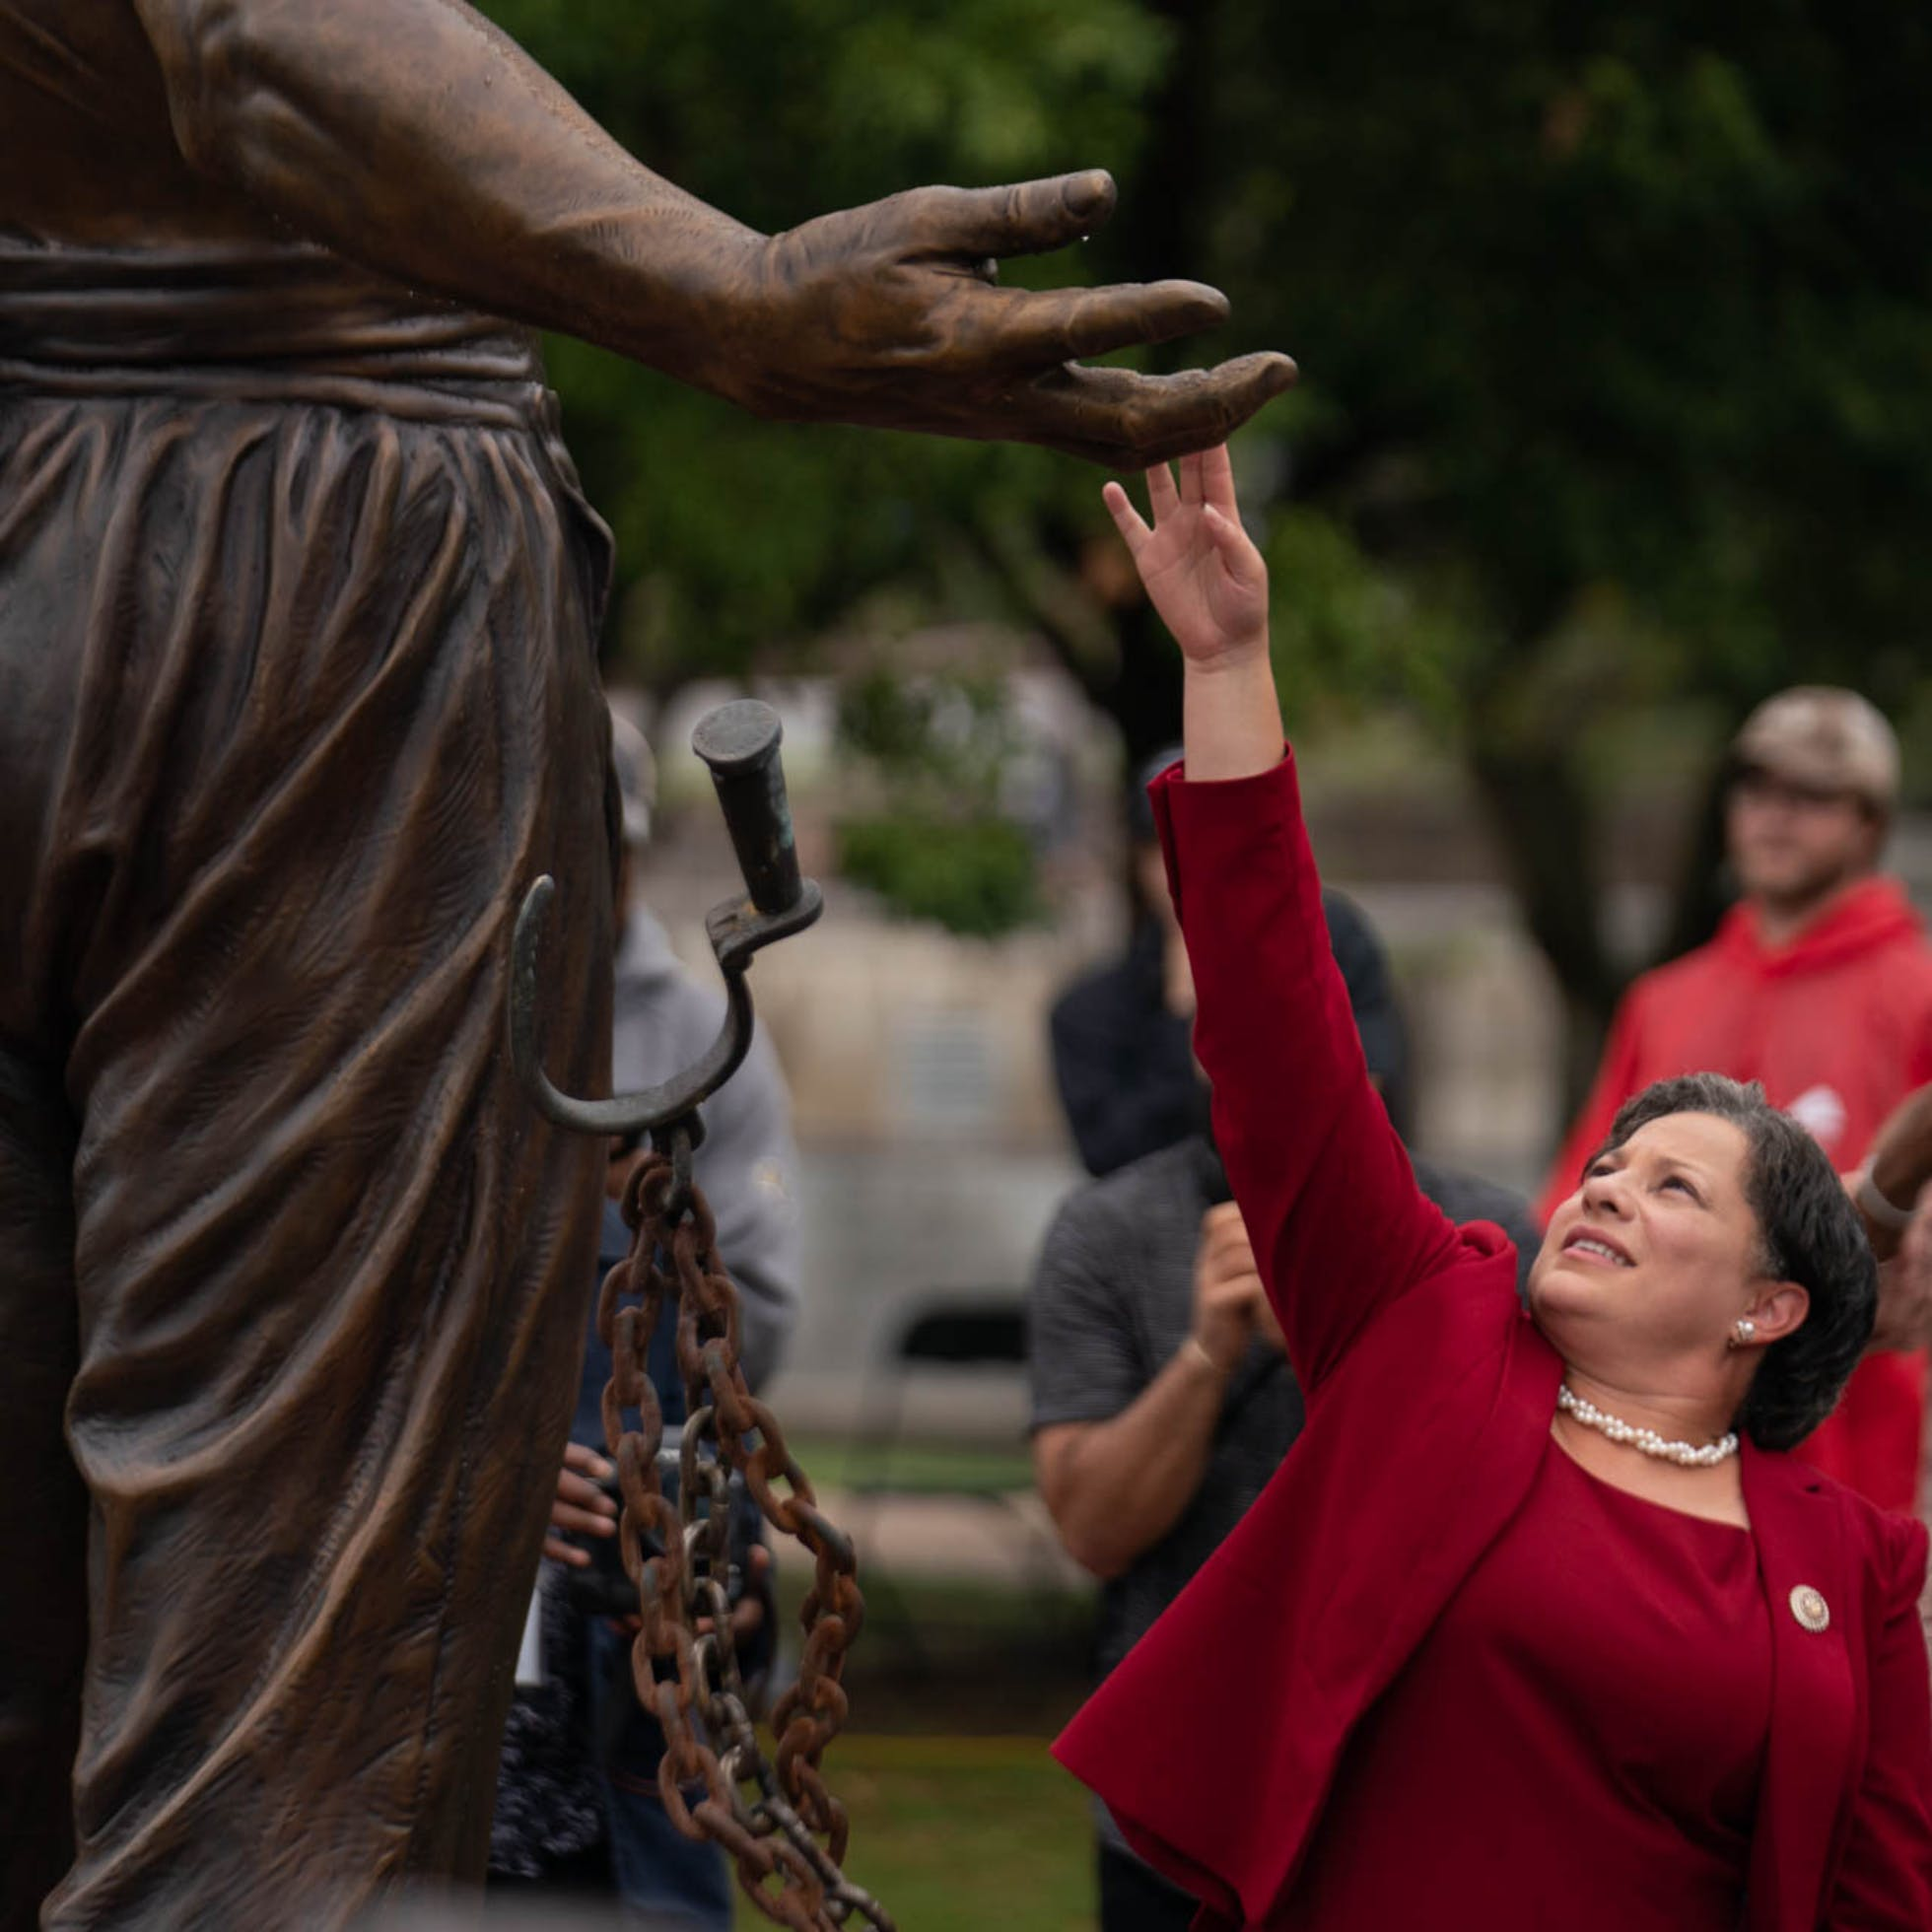 A woman touching the hand of the freed male slave statue depicted in the Emancipation and Freedom Monument in Richmond, VA